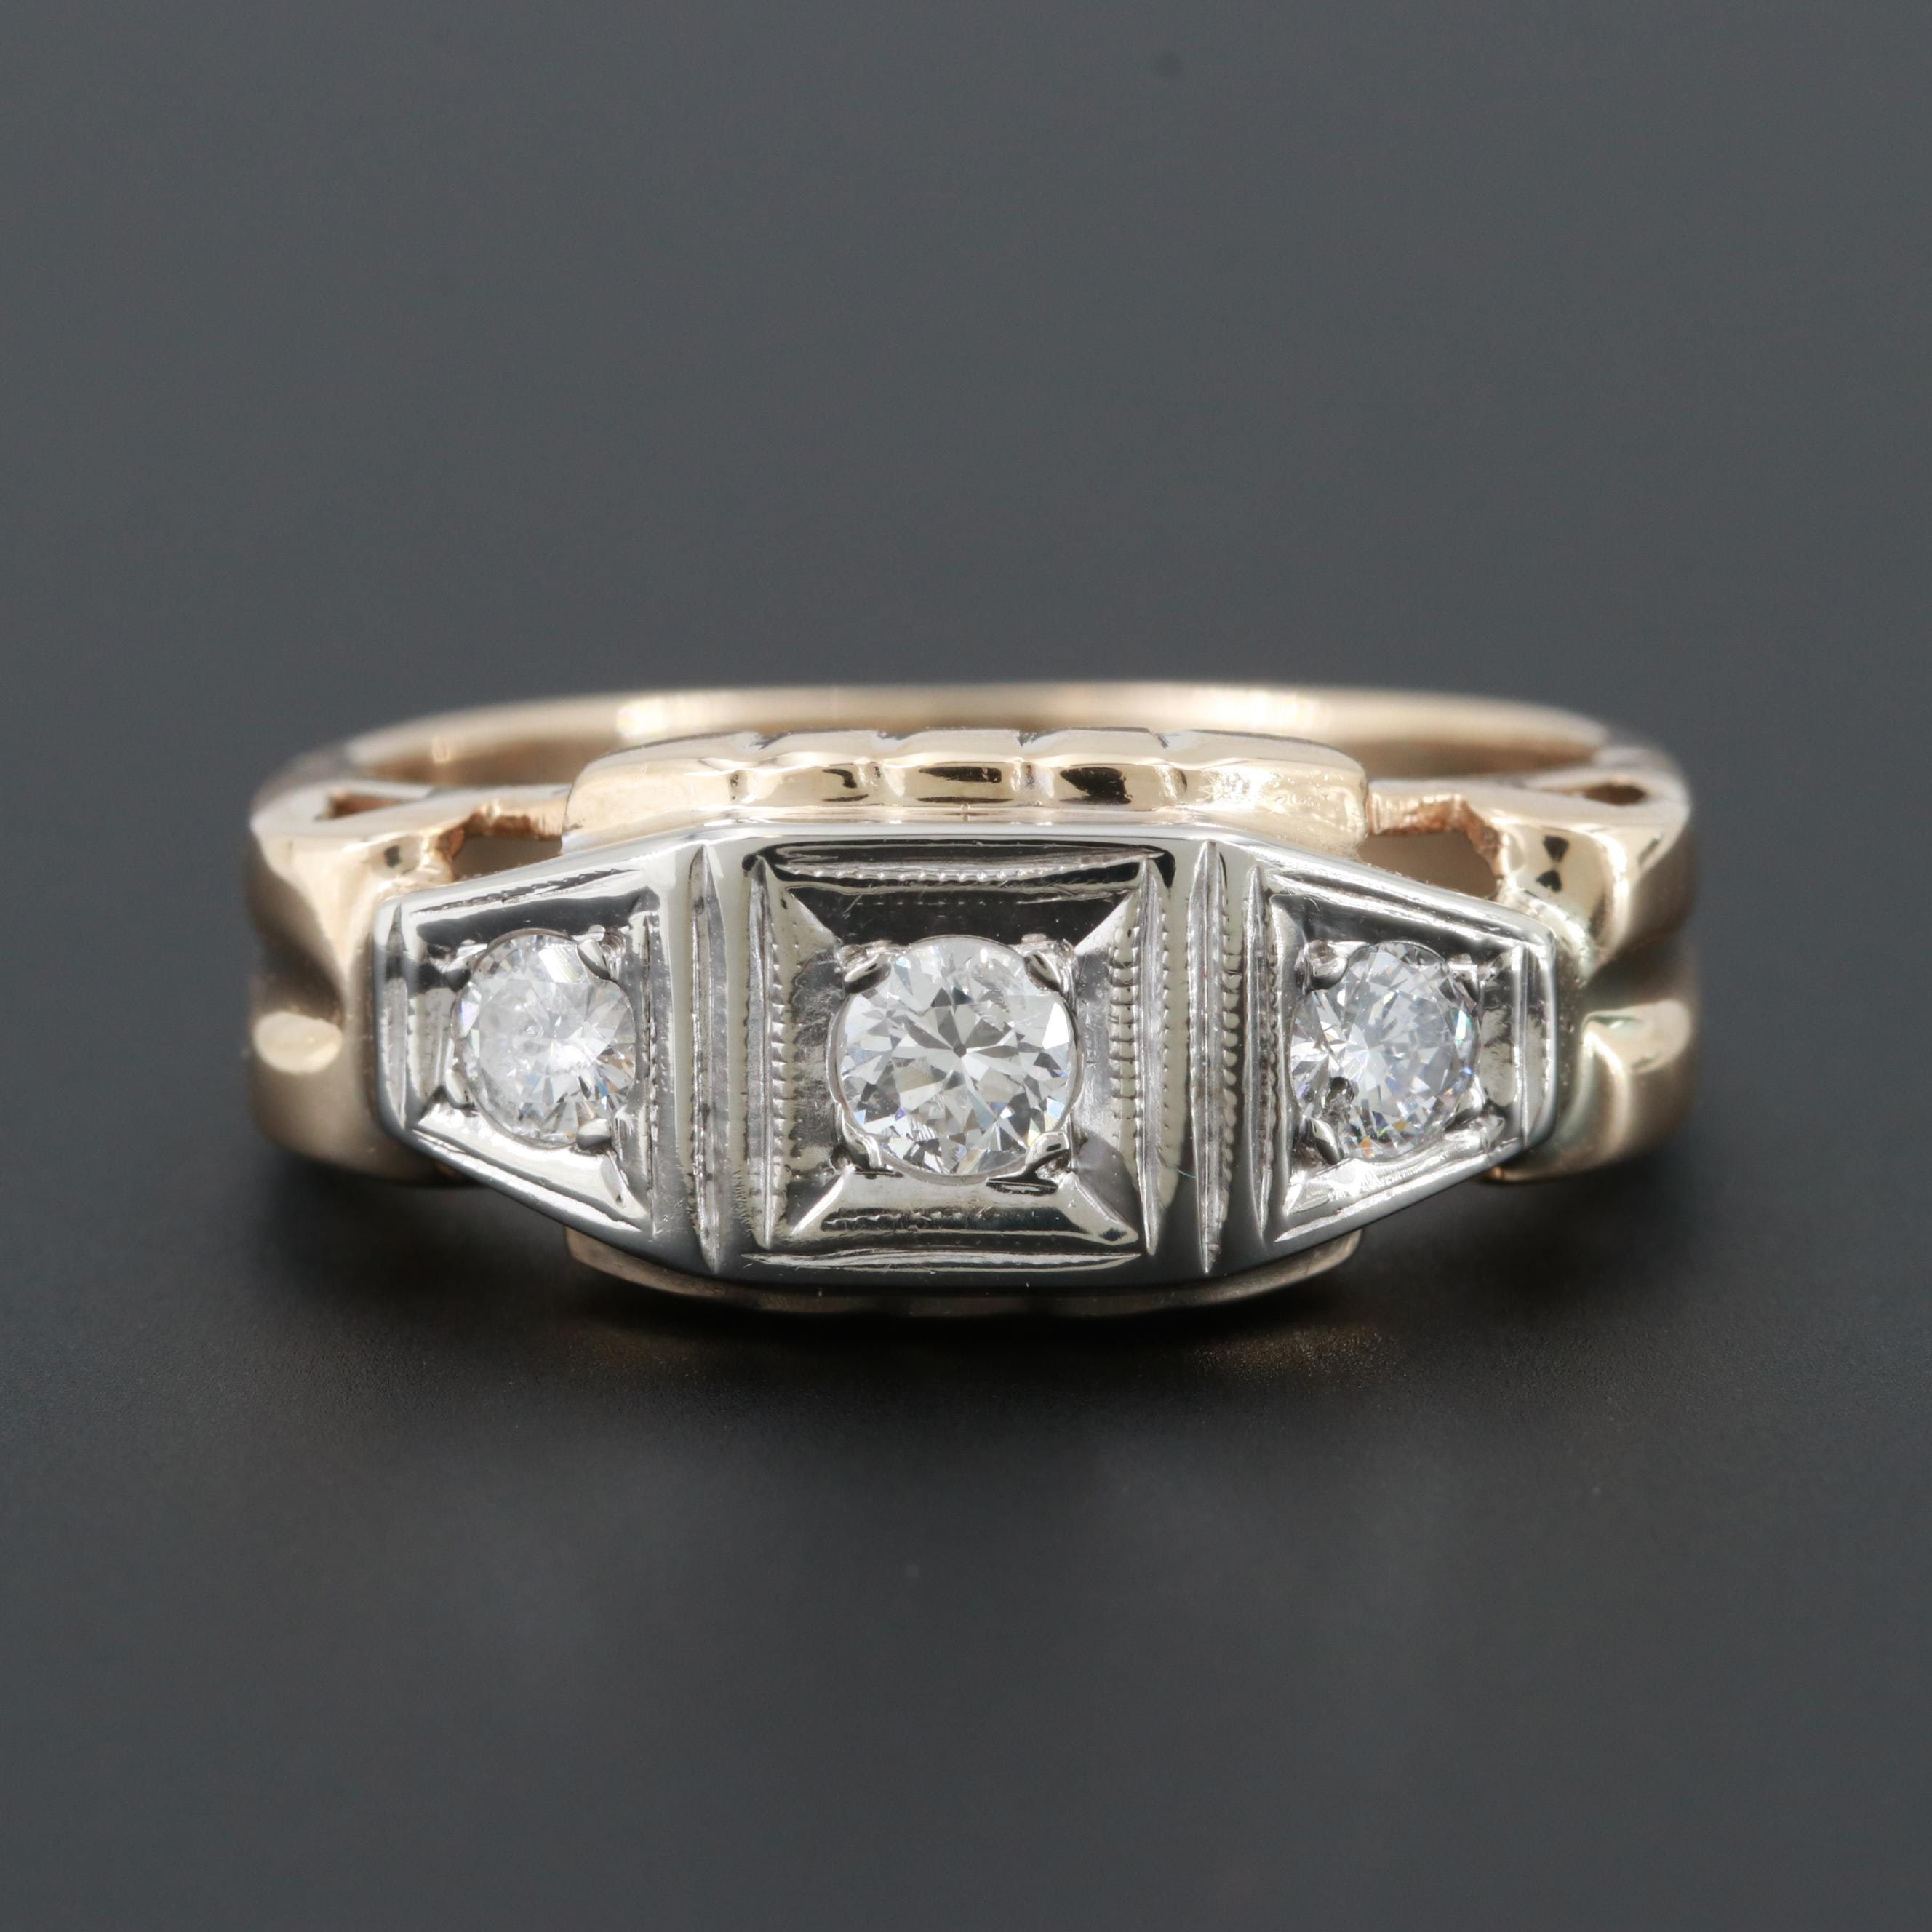 10K Yellow Gold Diamond Ring with 10K White Gold Accent